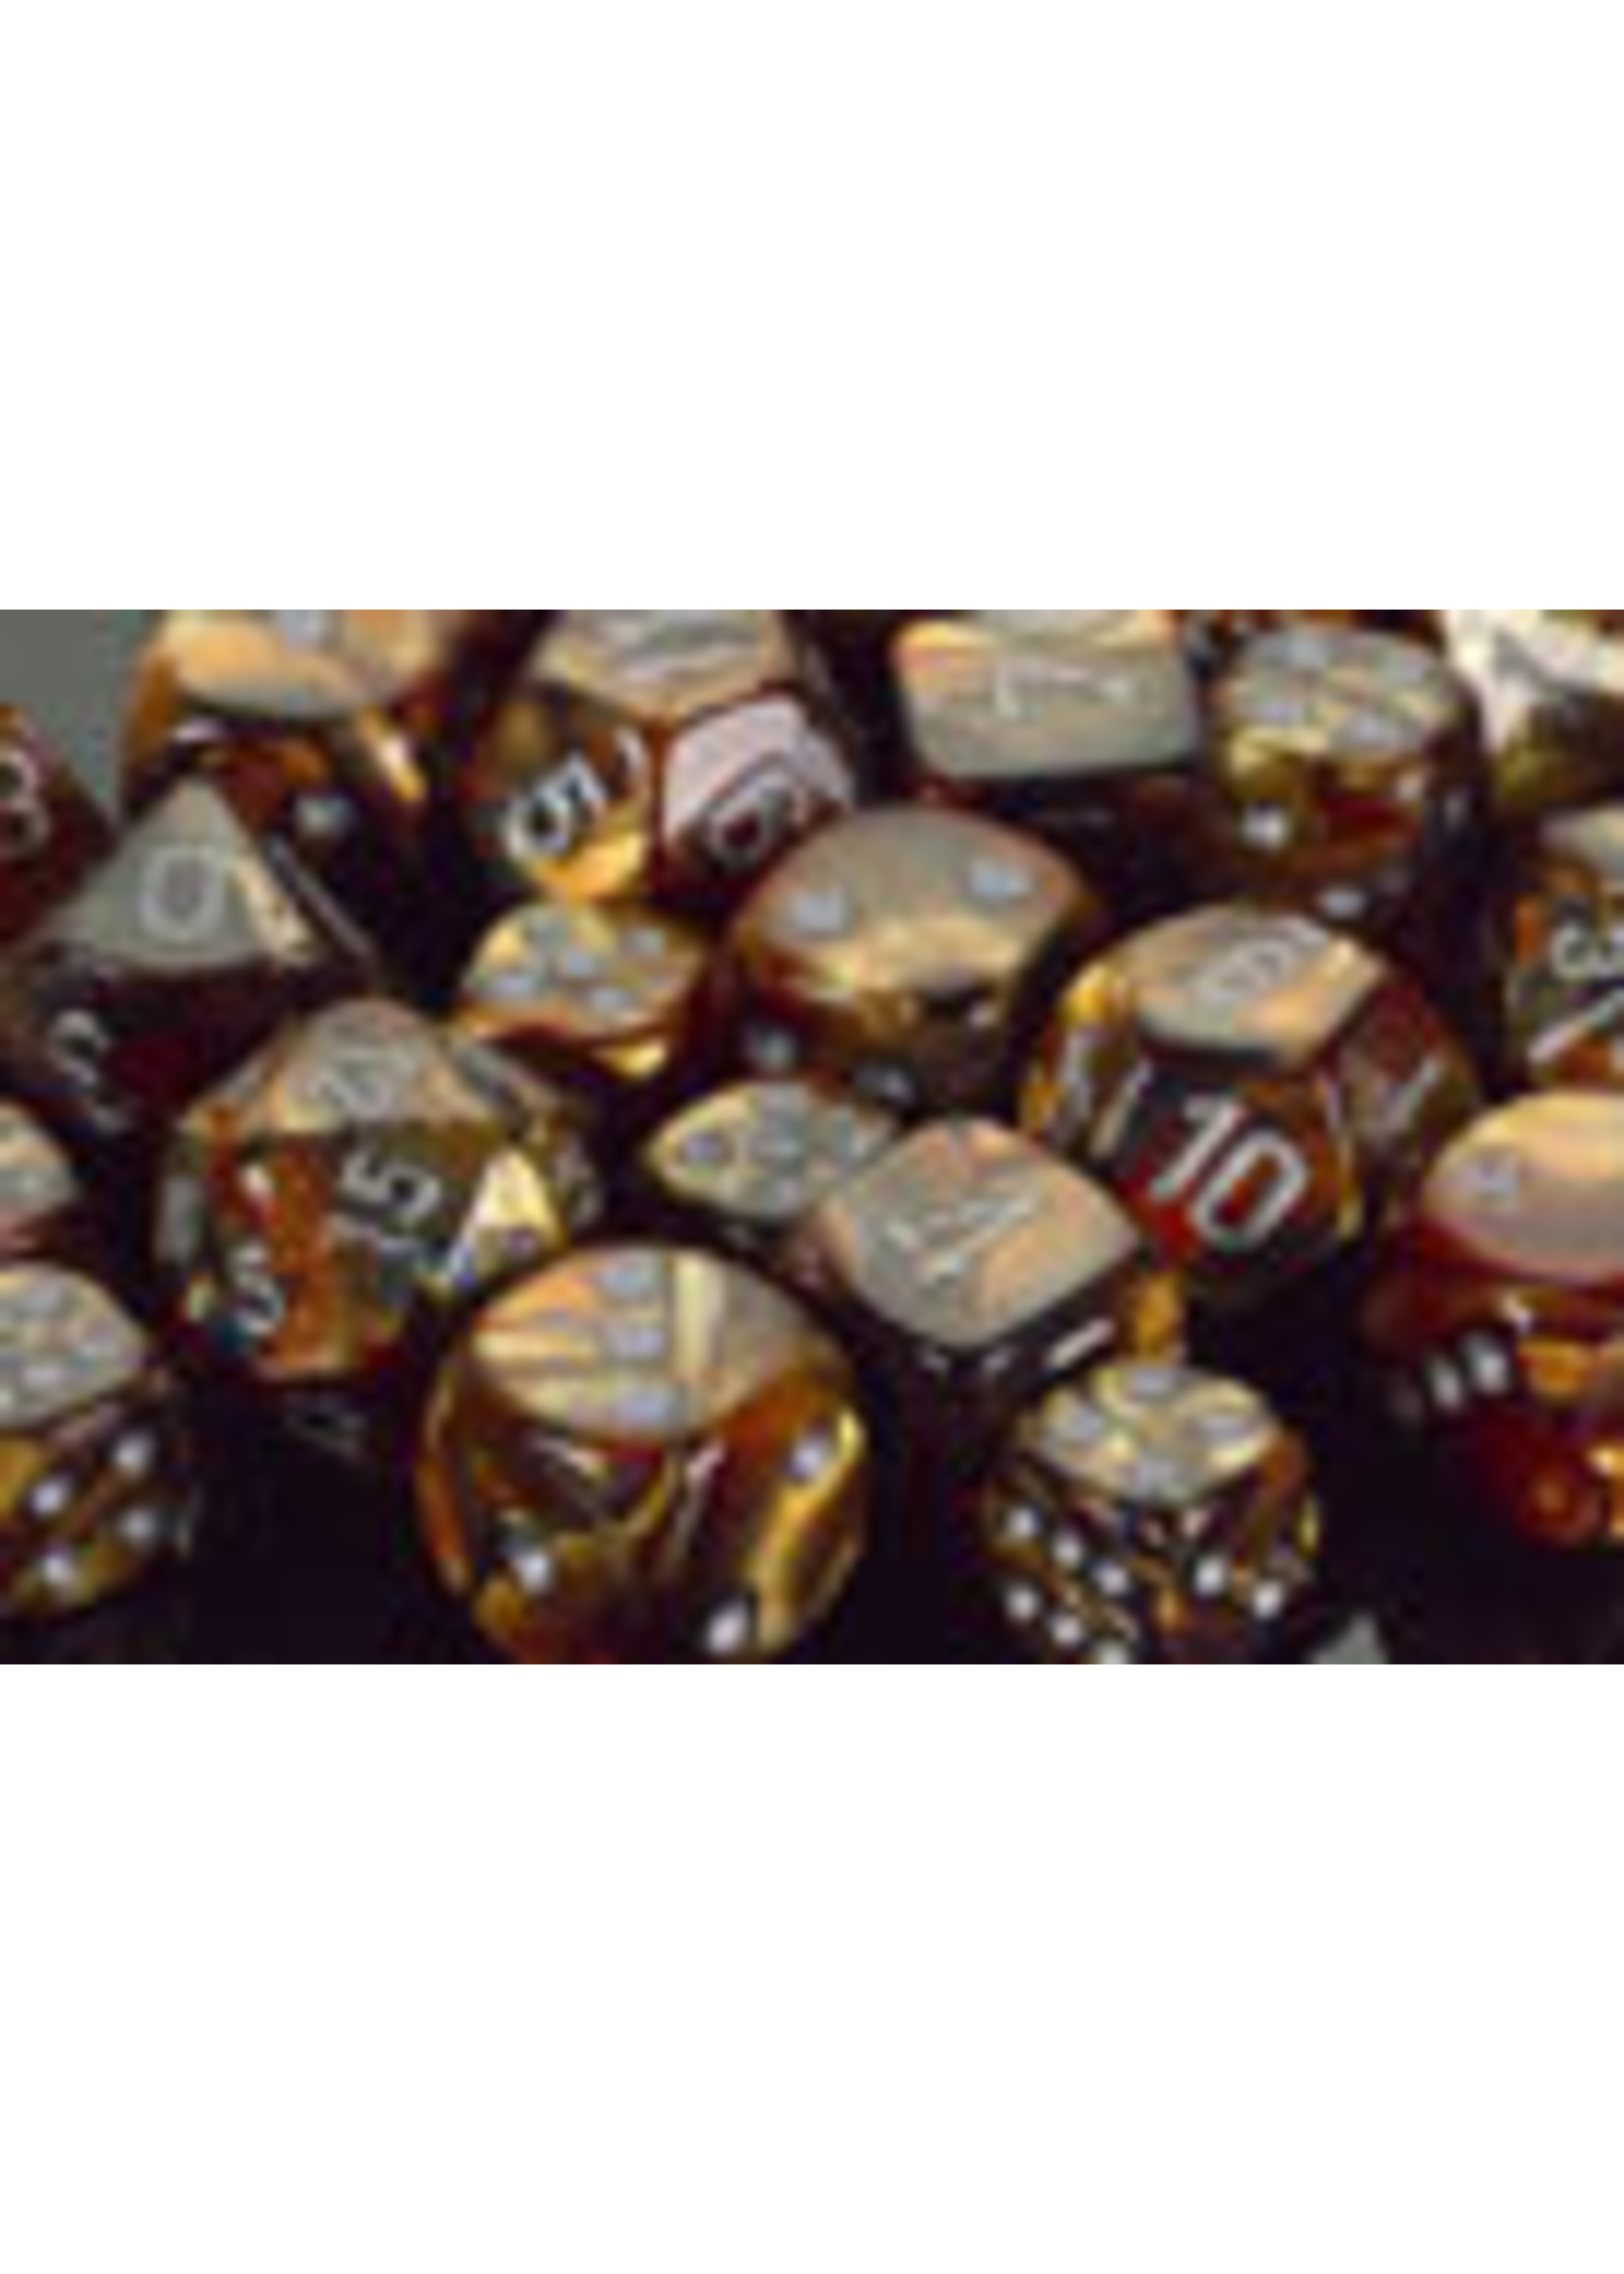 Chessex Lustrous Poly 7 set: Gold w/ Silver